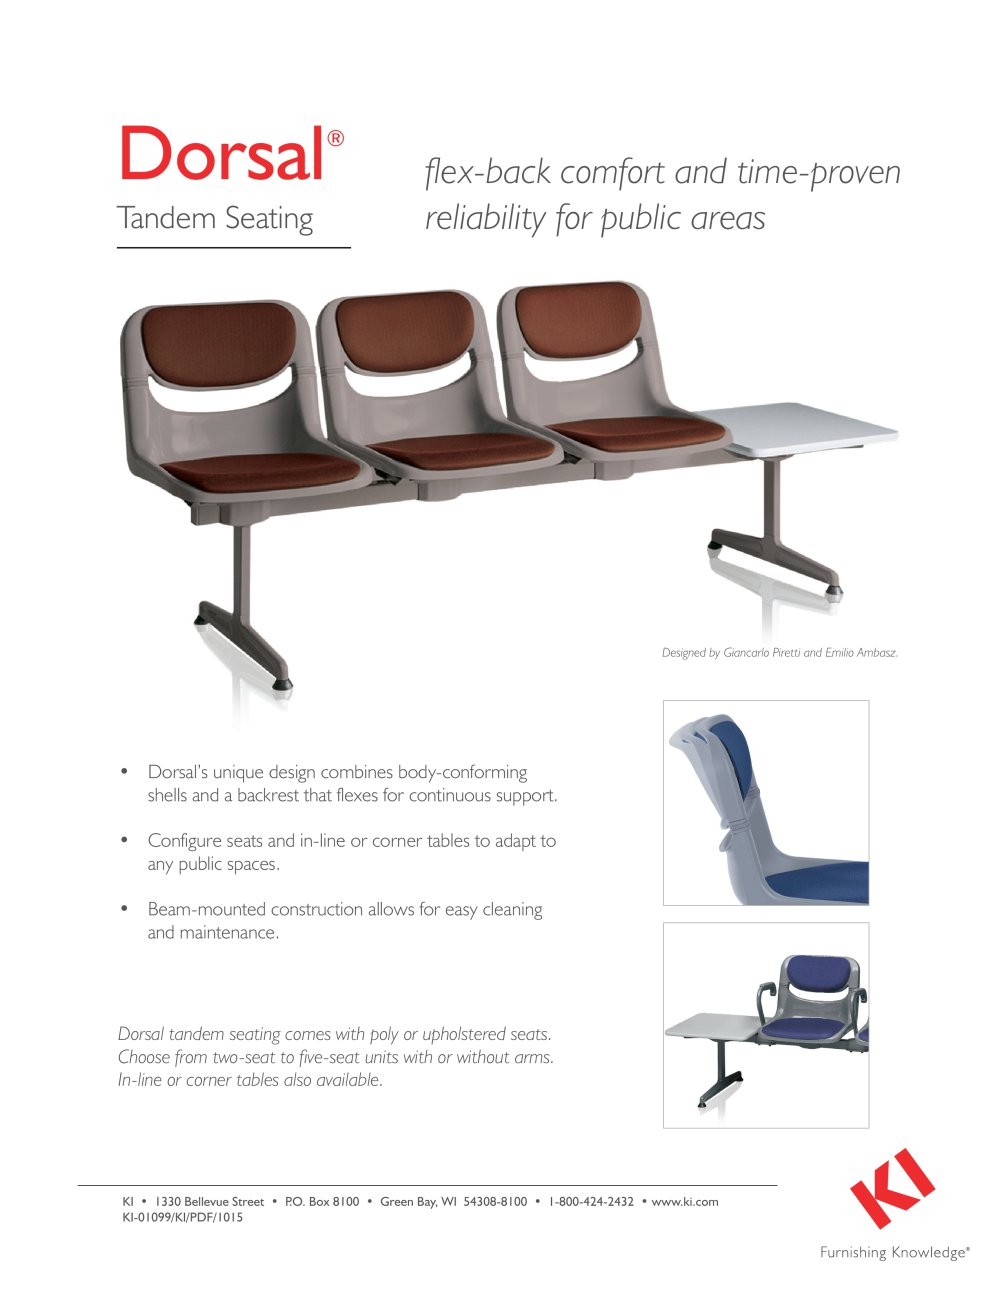 Dorsal Tandem Seating   1   1 PagesDorsal Tandem Seating   KI   PDF Catalogue   Technical Documentation. Ki Chairs Green Bay. Home Design Ideas